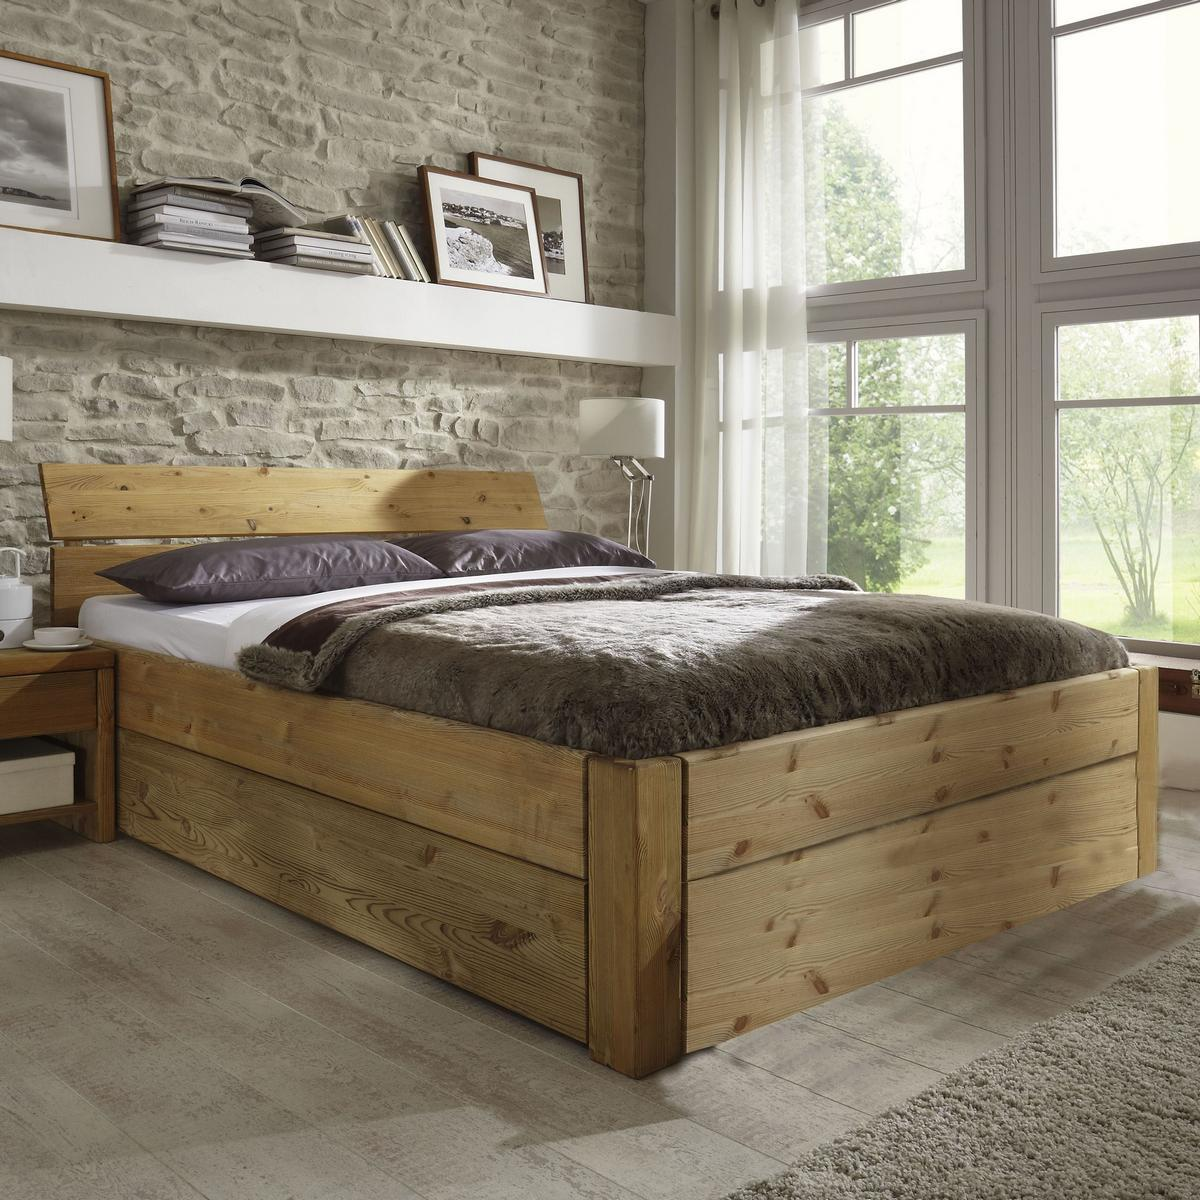 massivholz schubkastenbett 140x200 easy sleep kiefer massiv gelaugt ge lt 9214 93 52 5. Black Bedroom Furniture Sets. Home Design Ideas